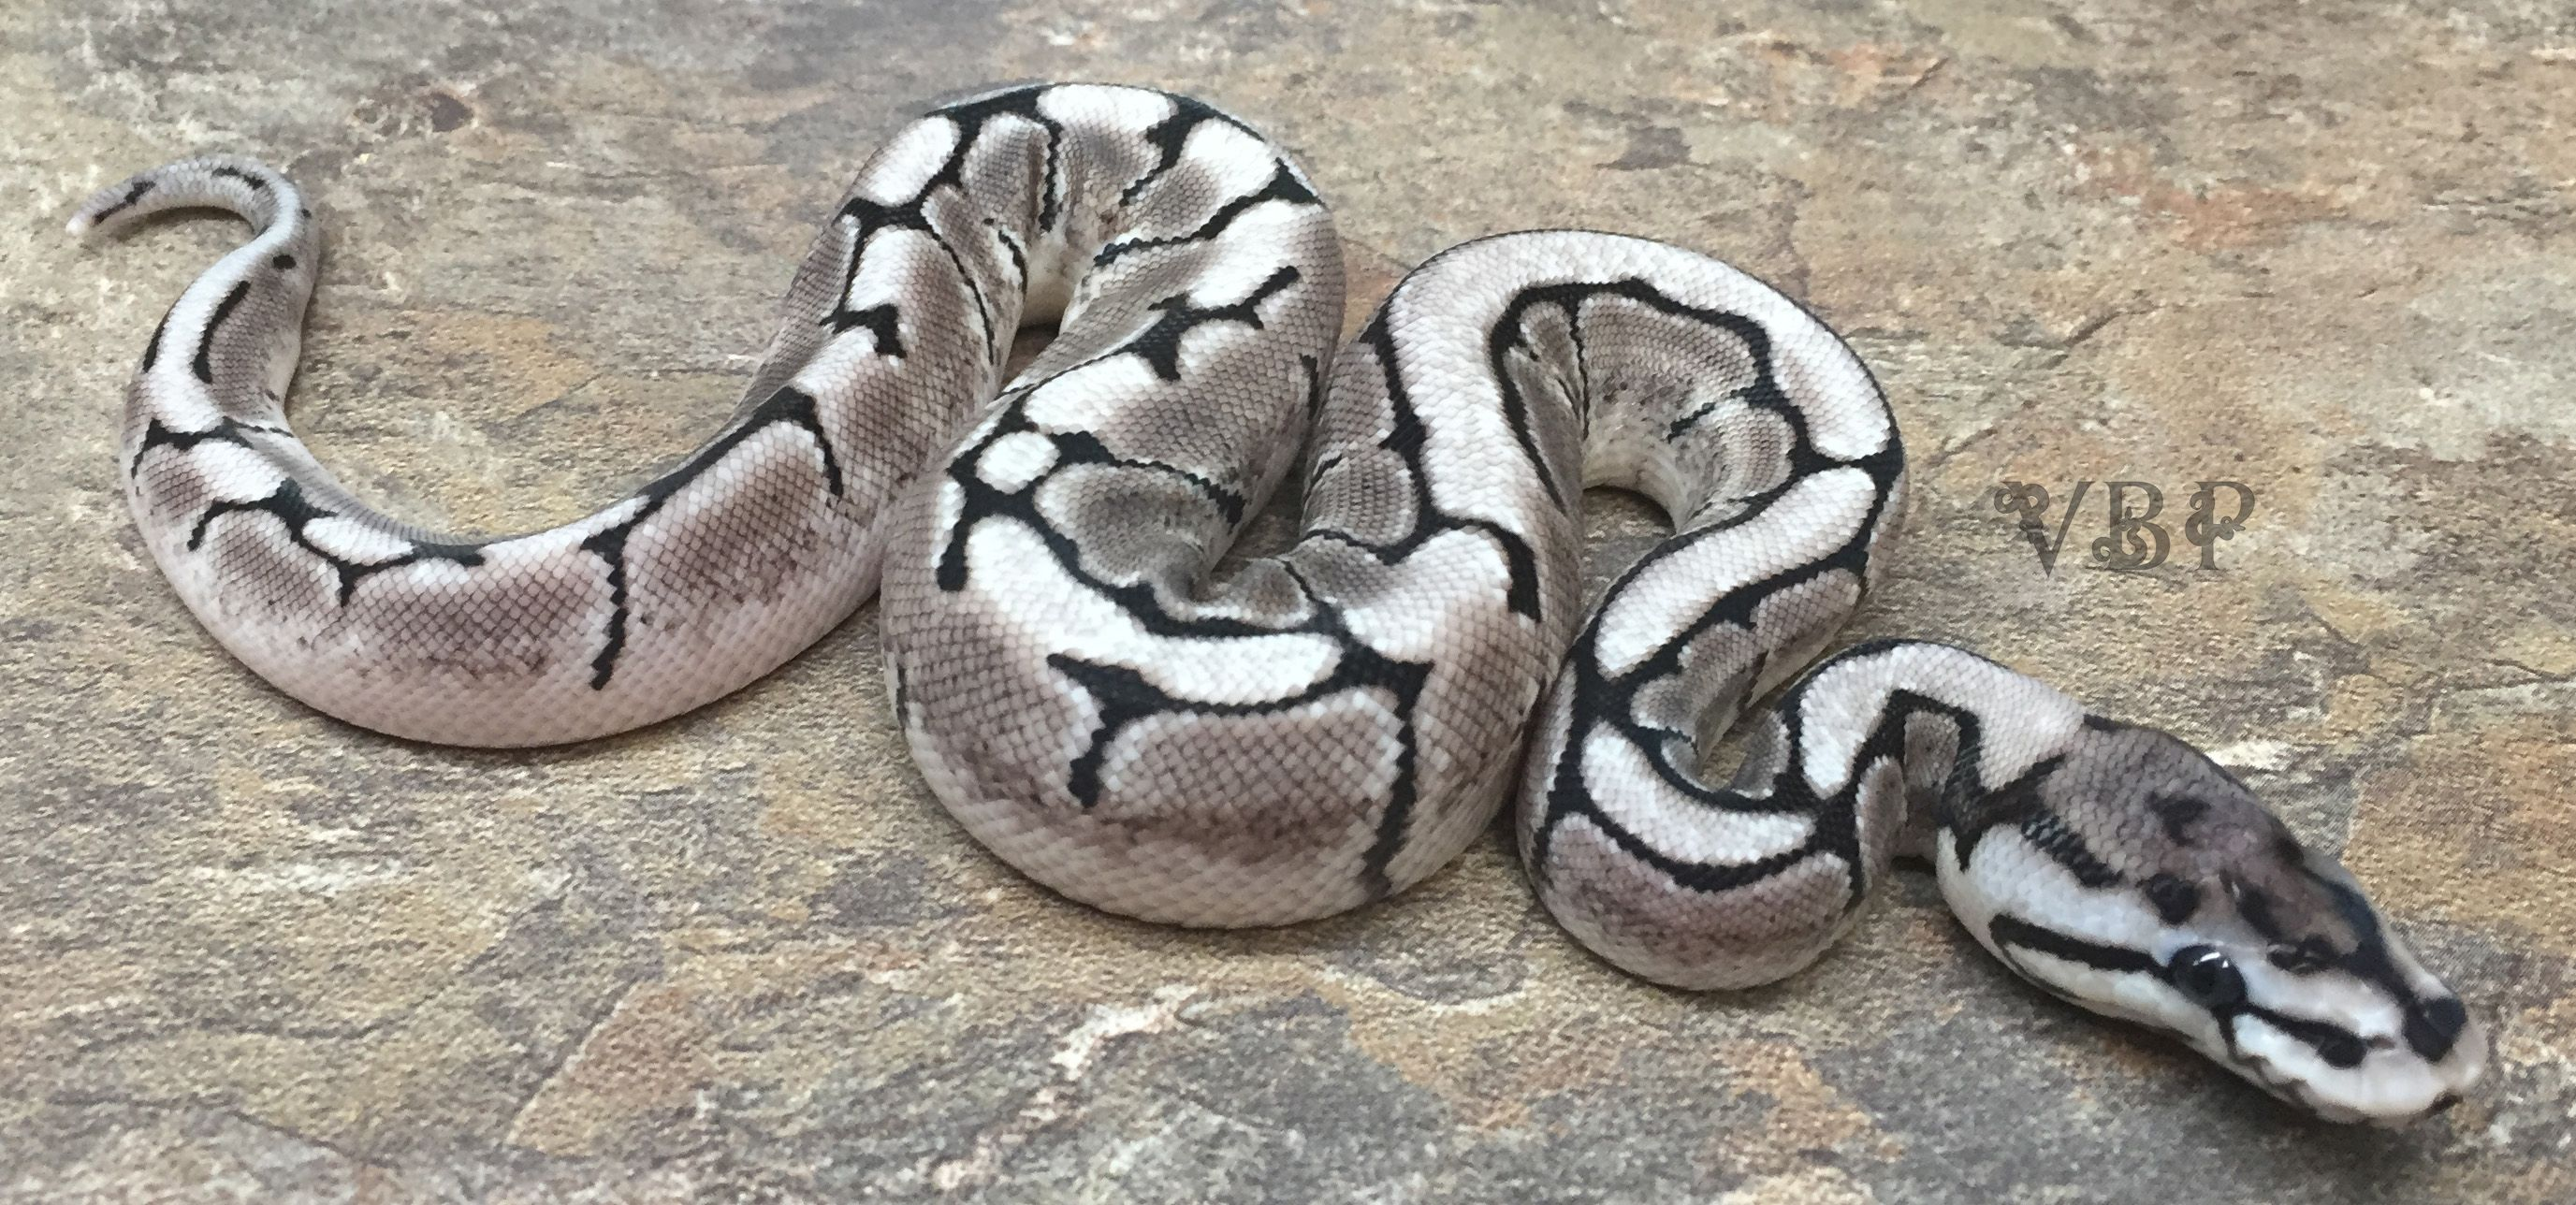 Vpi Axanthic Spider Ball Python By Vesper Ball Pythons Ball Python Pretty Snakes Cute Snake